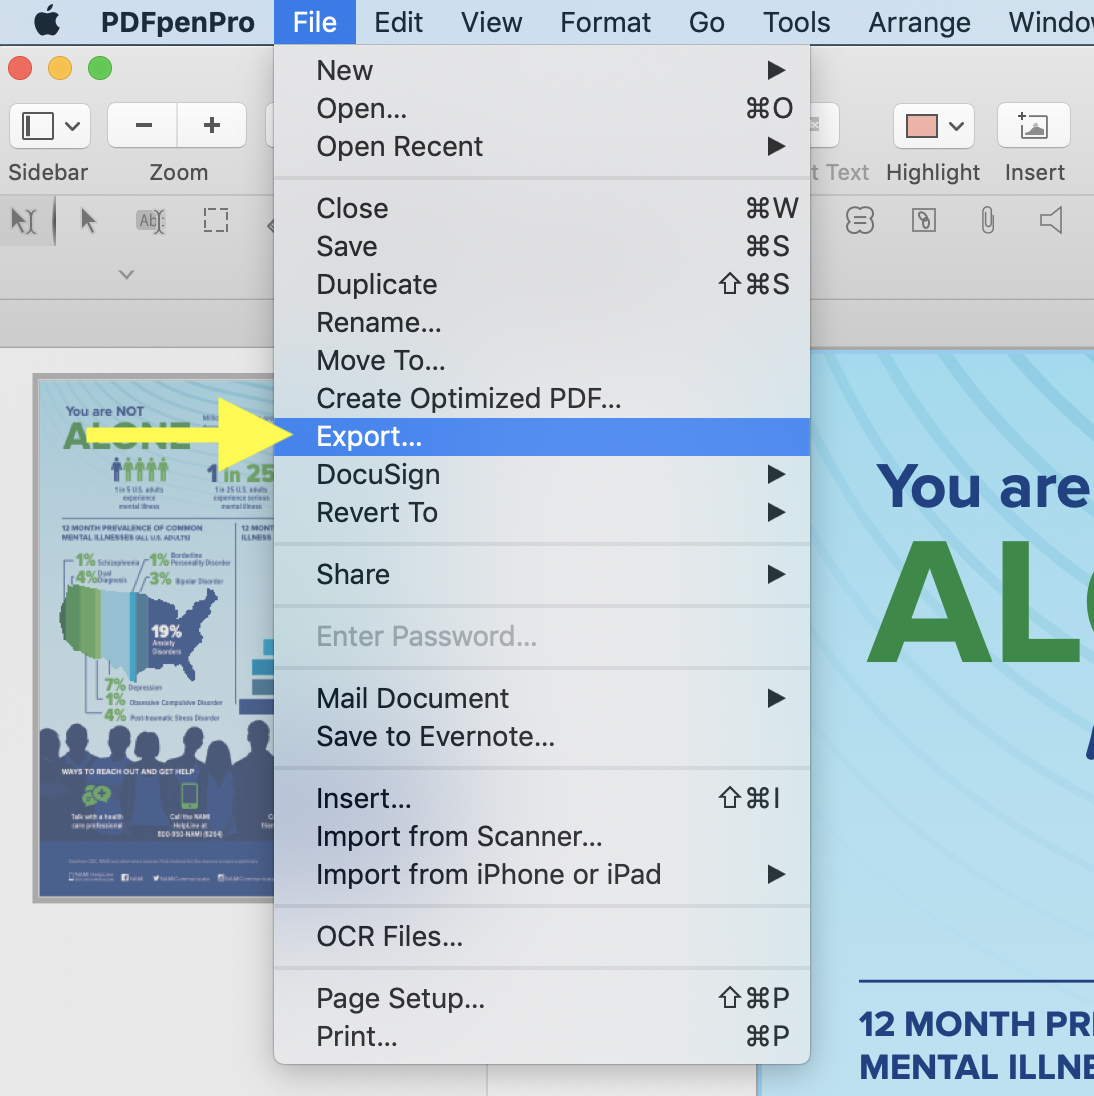 Choose File>Export from the PDFpenPro menu to convert to PDF/A format.